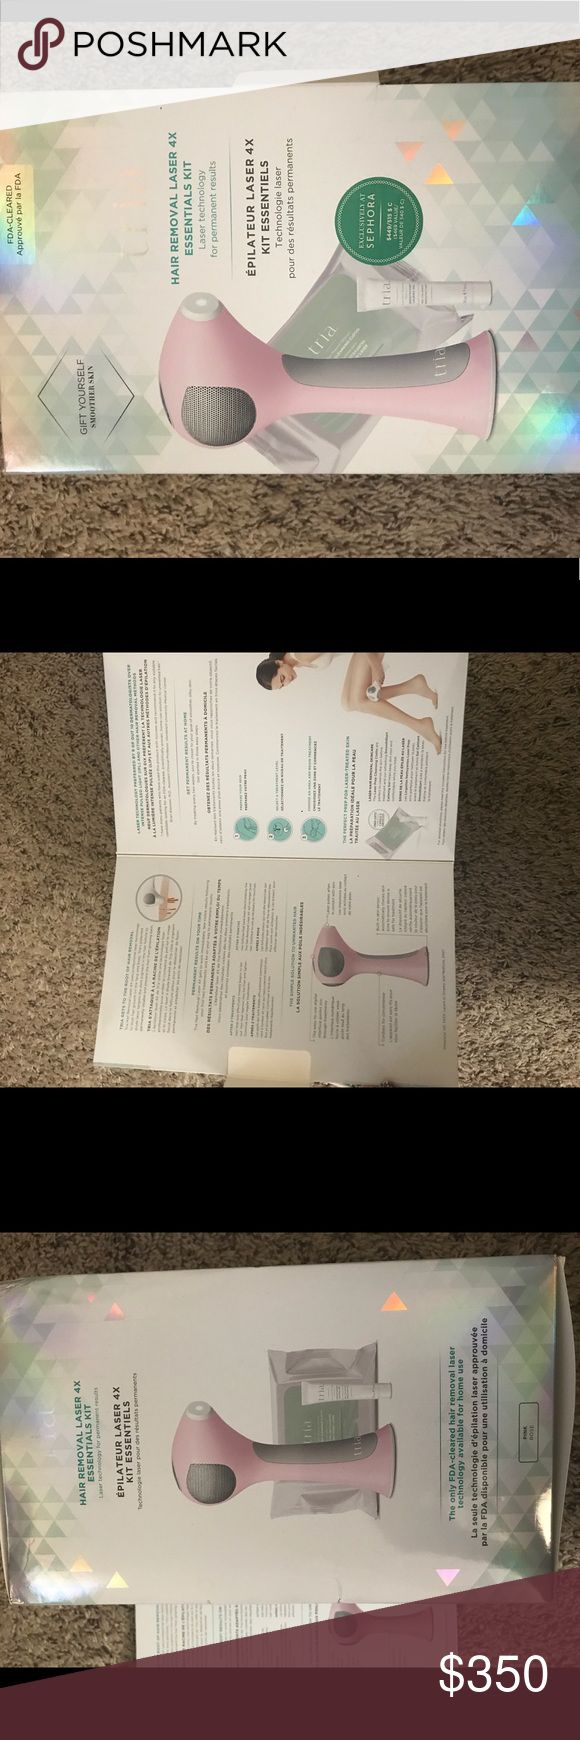 Brand new At home laser removal machine (tria) kit At home laser hair removal machine in pink. It is the tria holiday edition. Comes with smoothing gel and prep cleansing clothes! It has never been opened or used! Brand new in box! Other